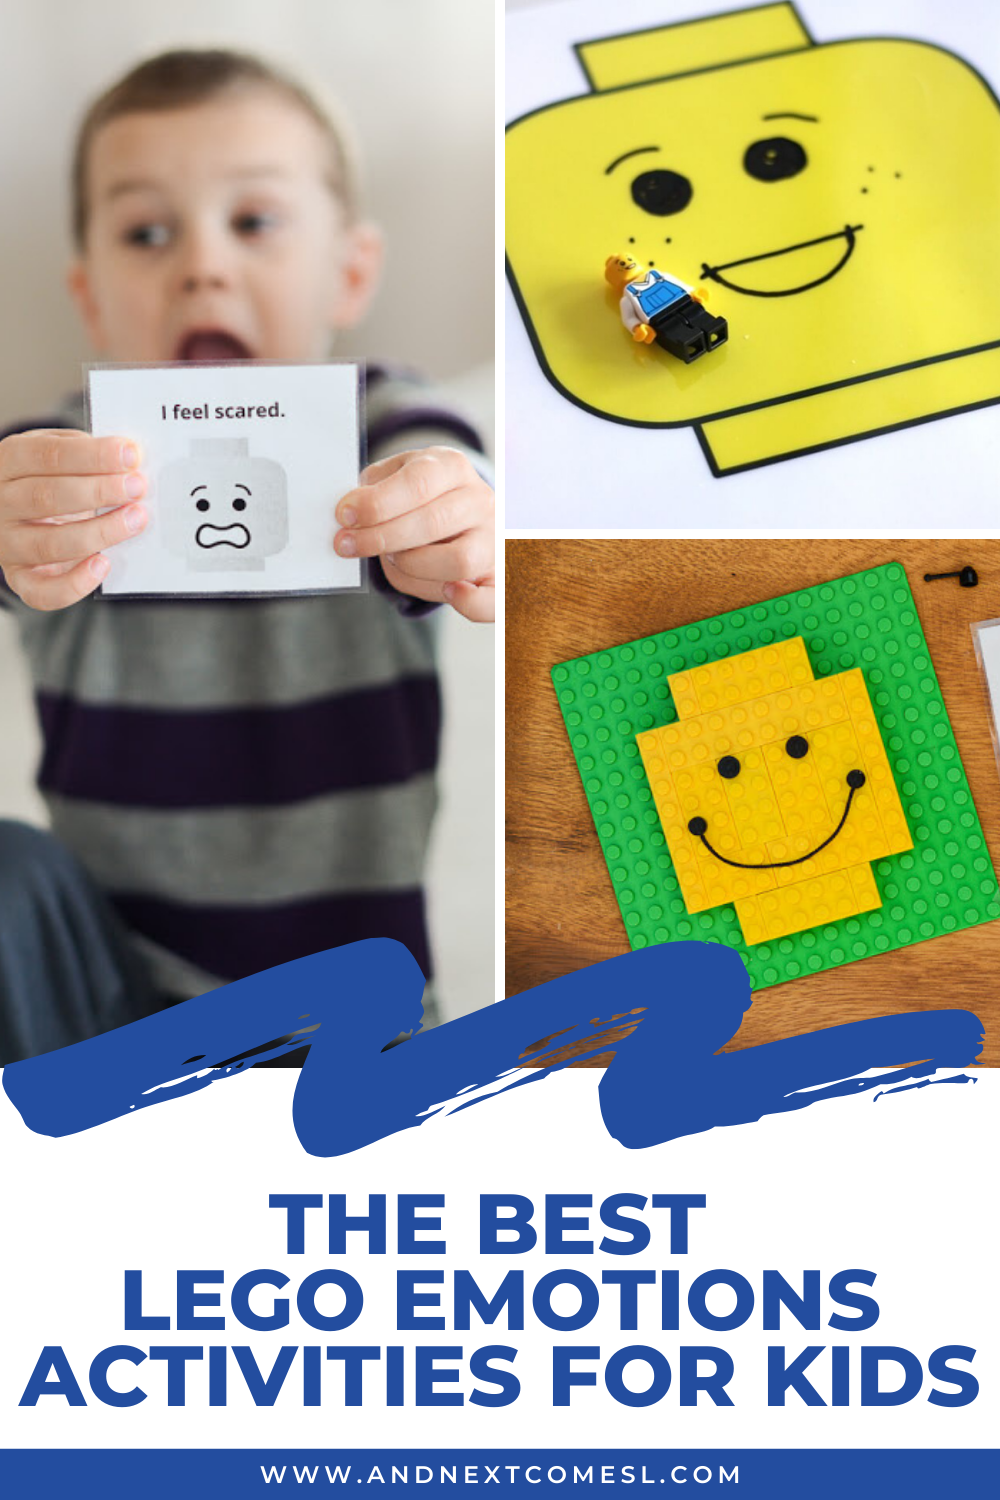 Fun LEGO emotions activities for kids - great for toddlers, preschoolers, and up!